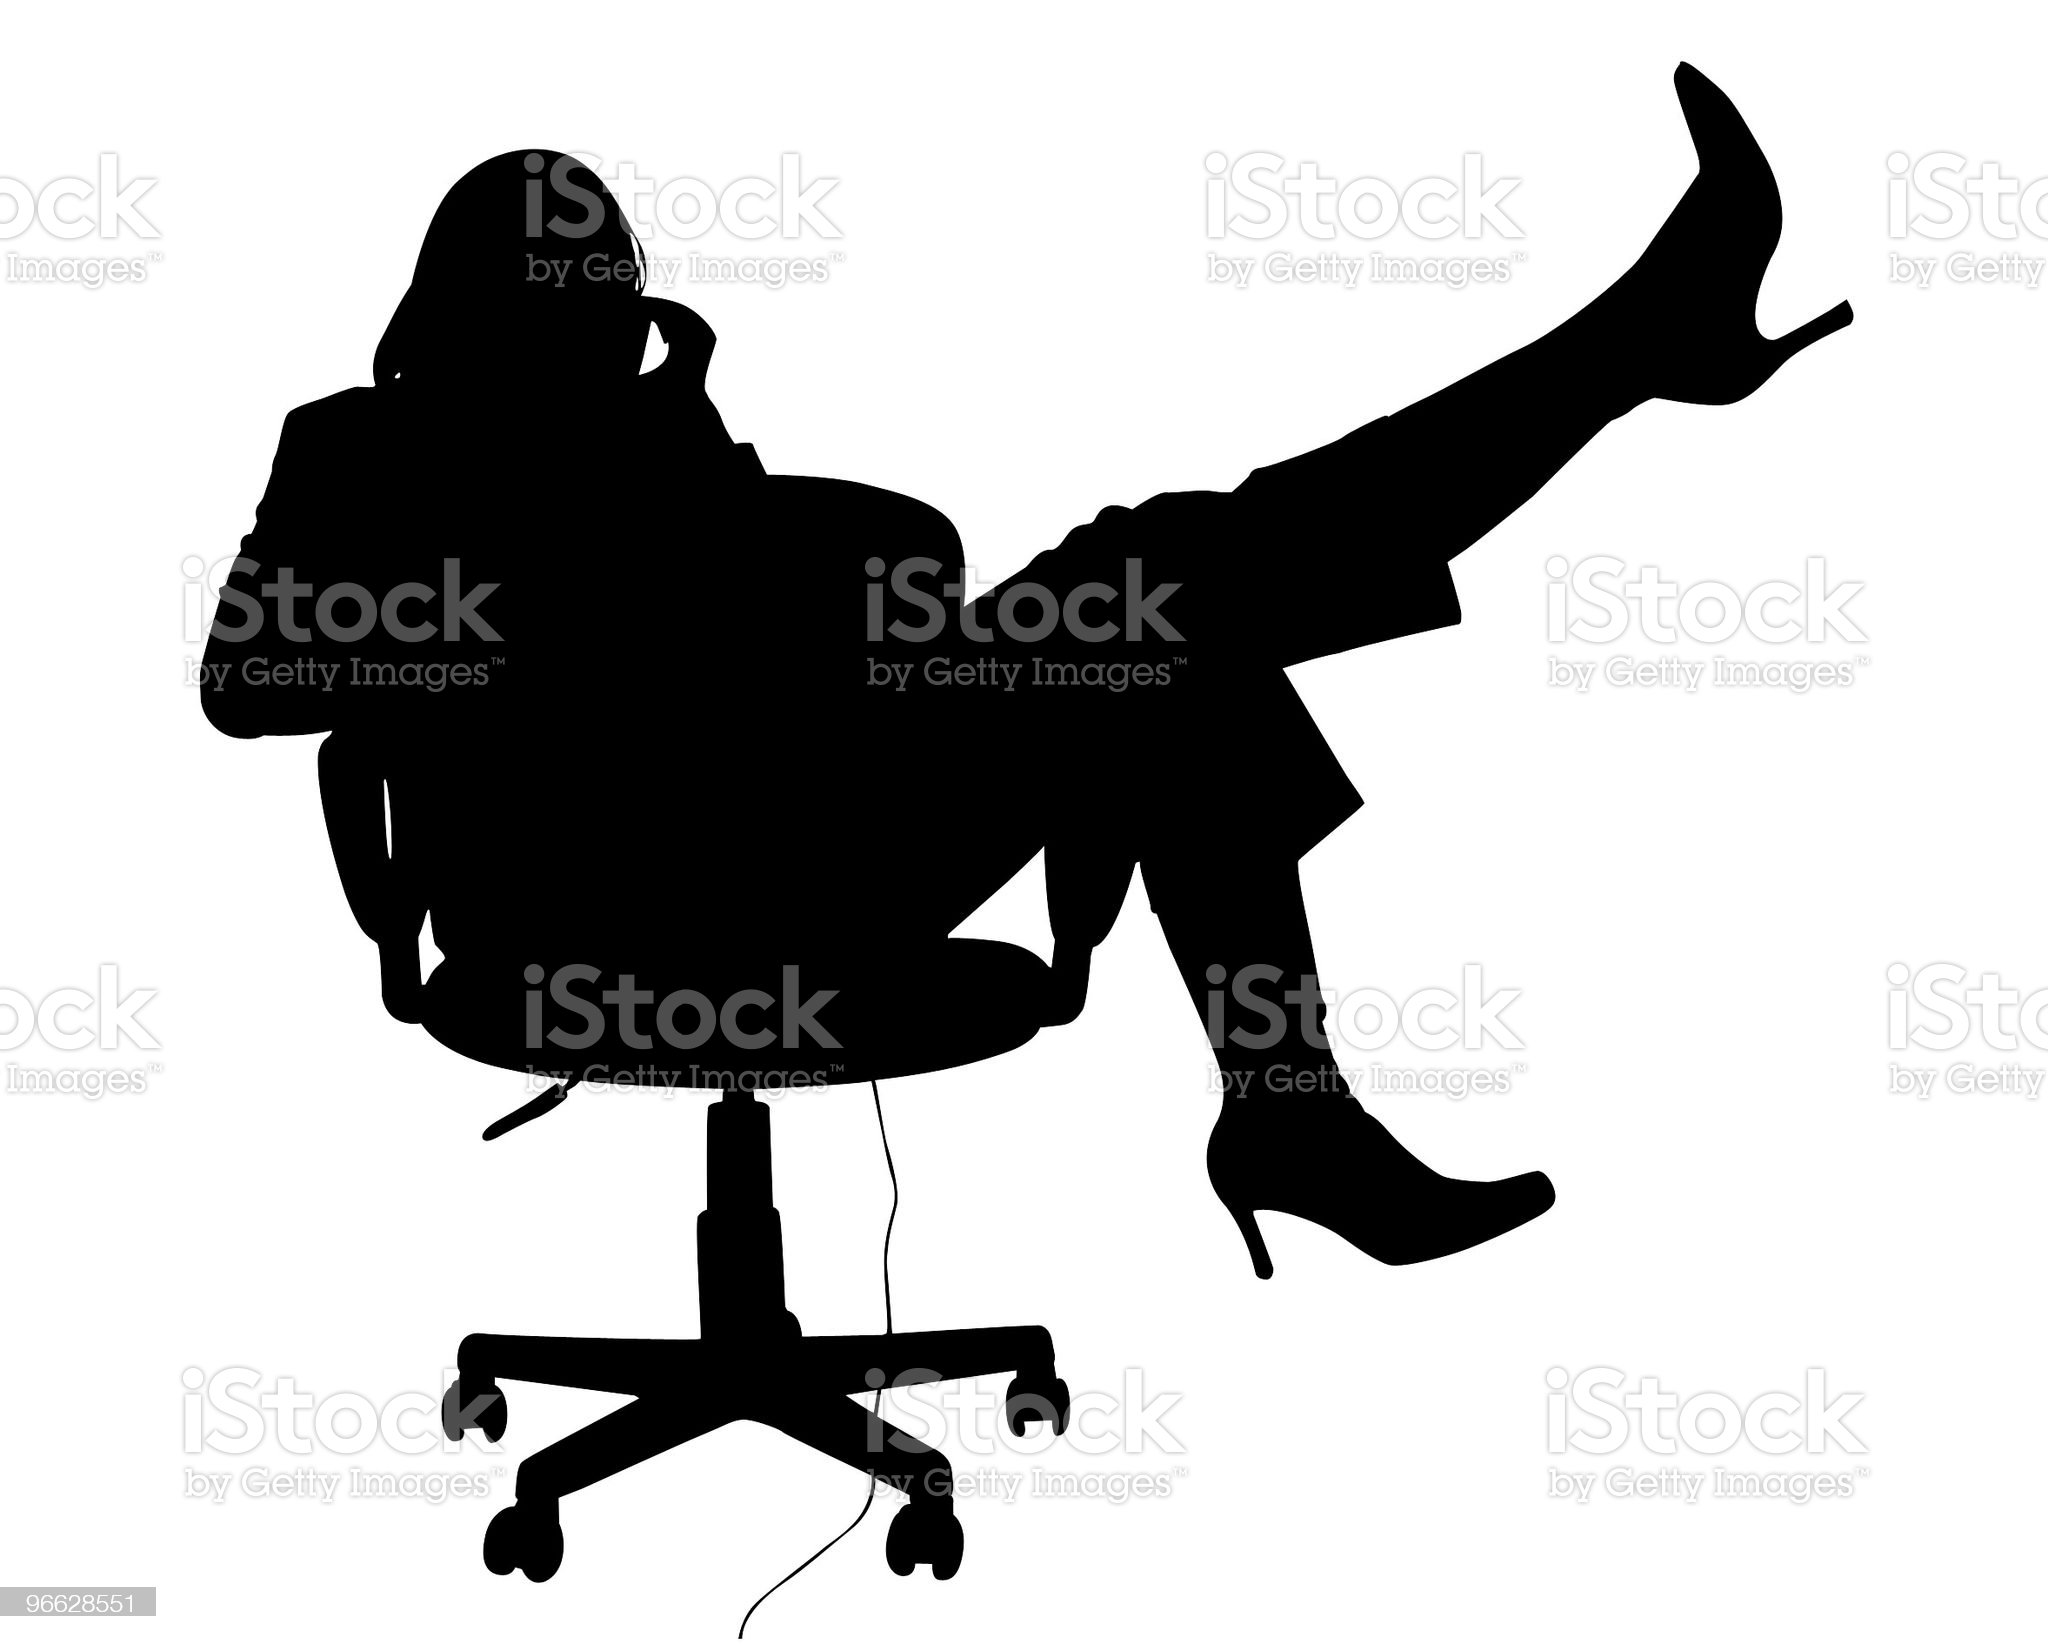 Silhouette With Clipping Path of Woman in Chair on Phone royalty-free stock photo